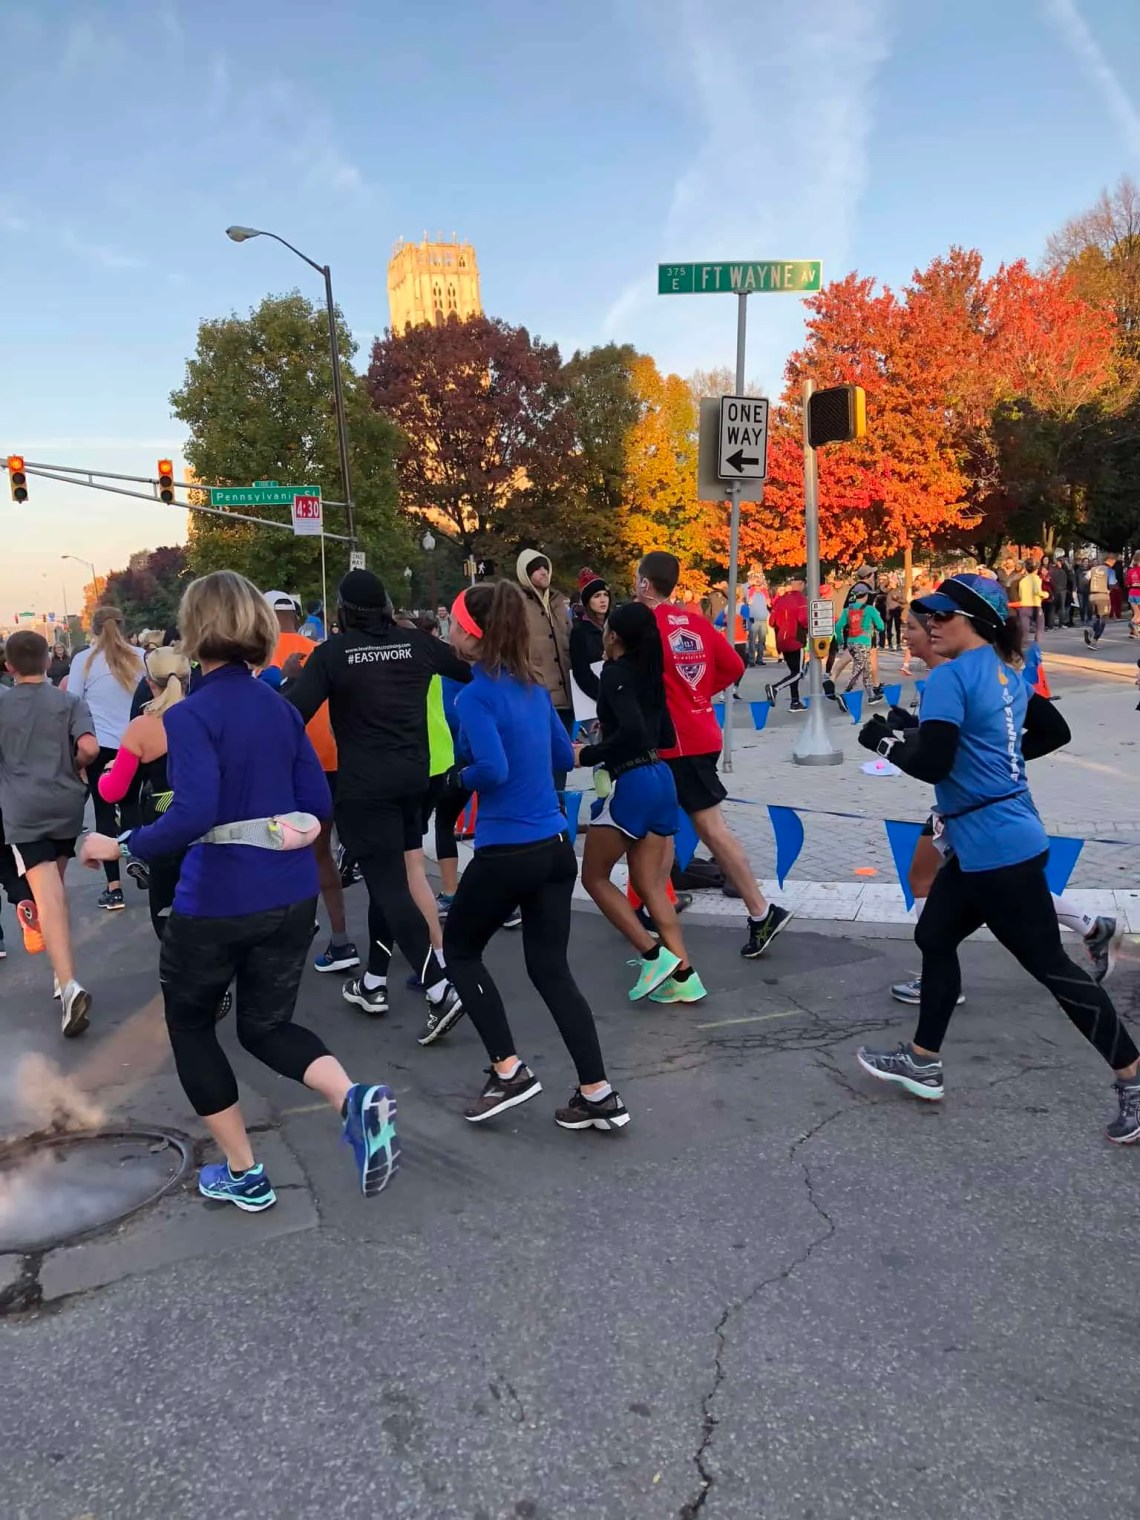 Here's everything you need to know about the Indianapolis Monumental Marathon!